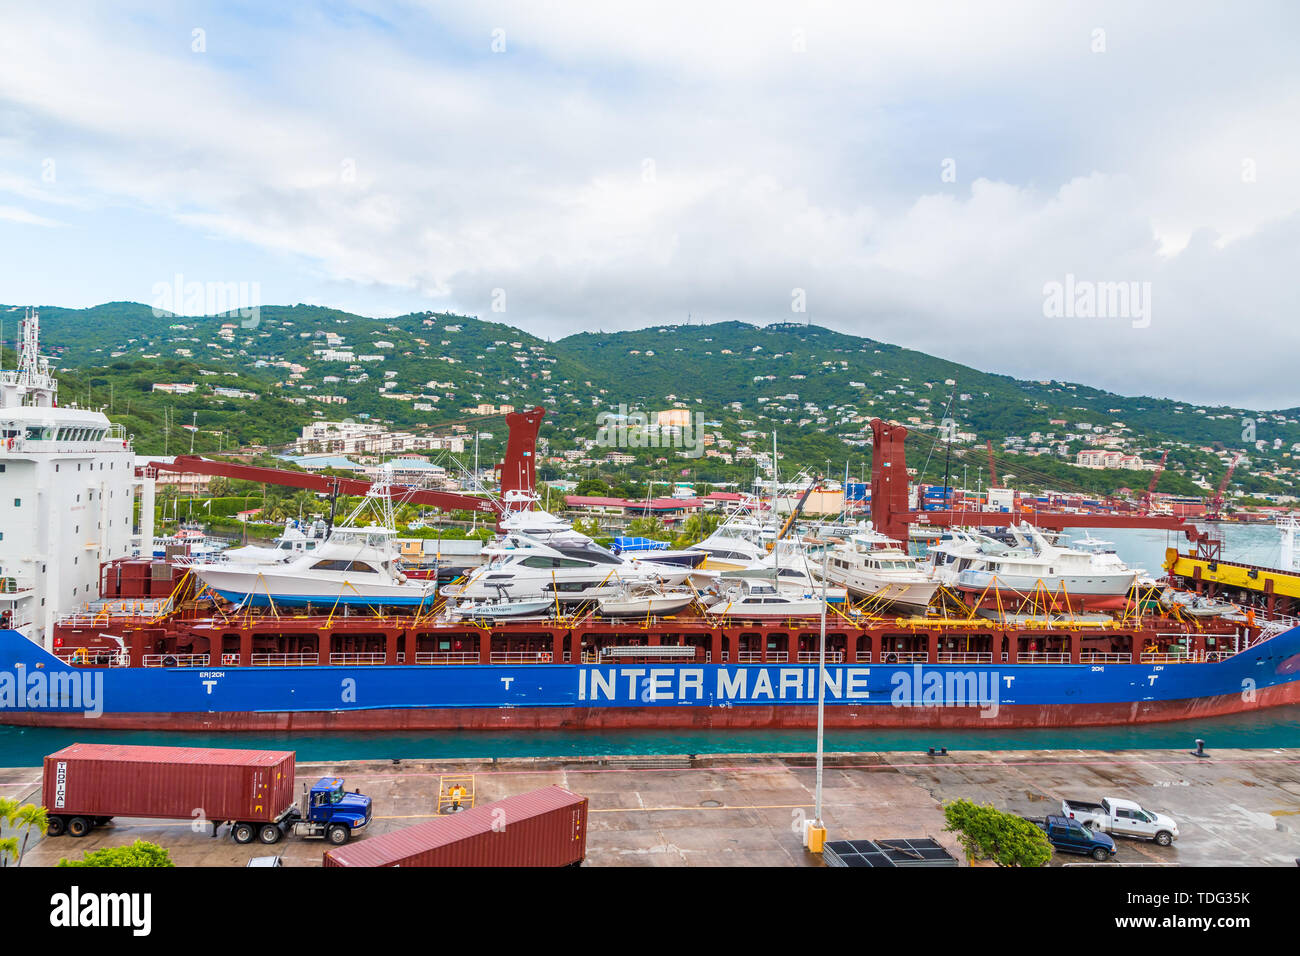 ST THOMAS, USVI - December 5, 2016: Freighters now carry most of the world's cargo and the largest container ships can carry over 21,000 units of frei - Stock Image